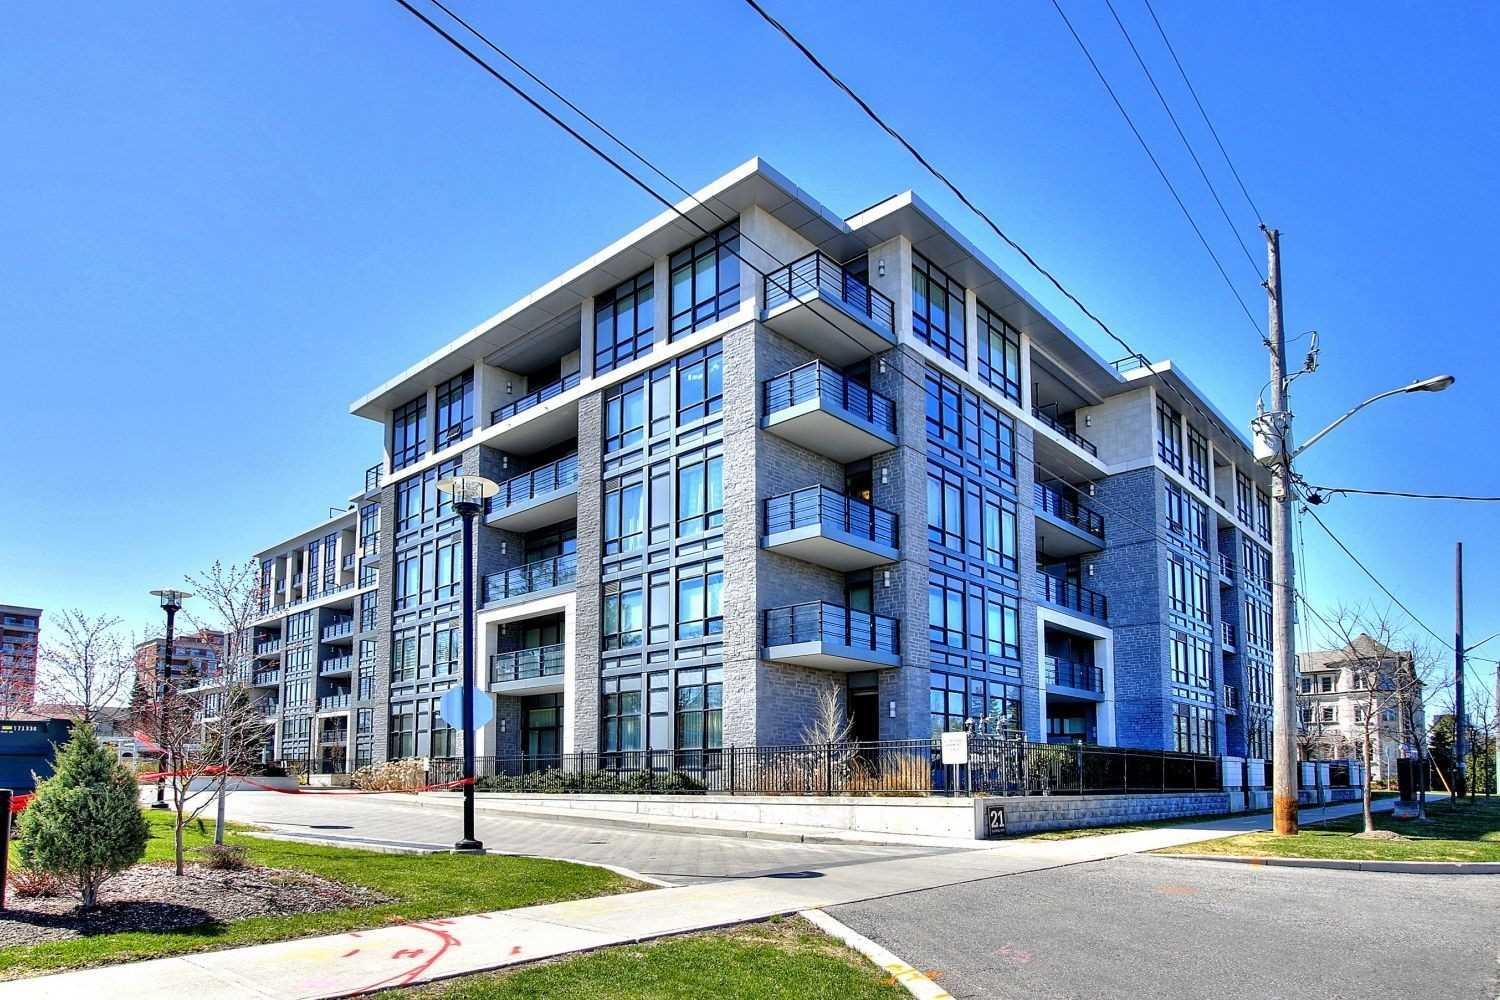 #217-21 Clairtrell Road, Toronto - For Lease $2,450/month | LEASED for 100% of asking.